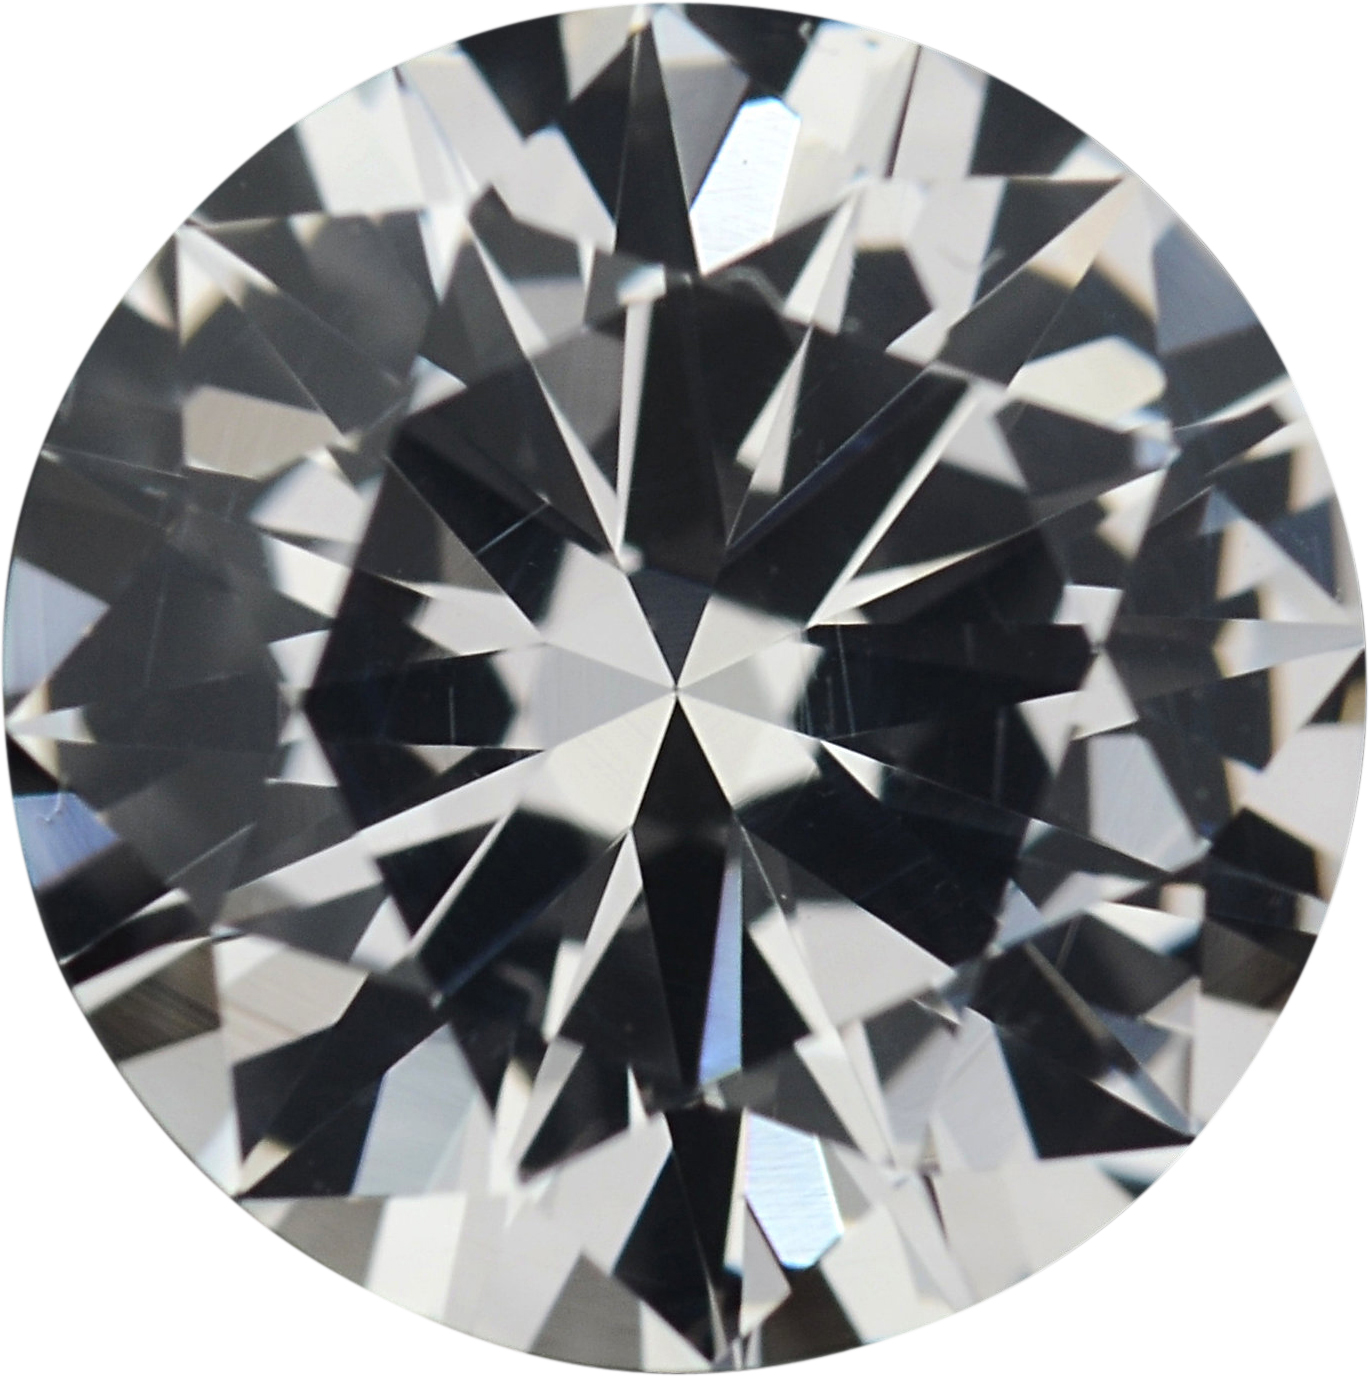 1.47 carats White Loose Sapphire Gemstone in Round Cut, 7.04 mm